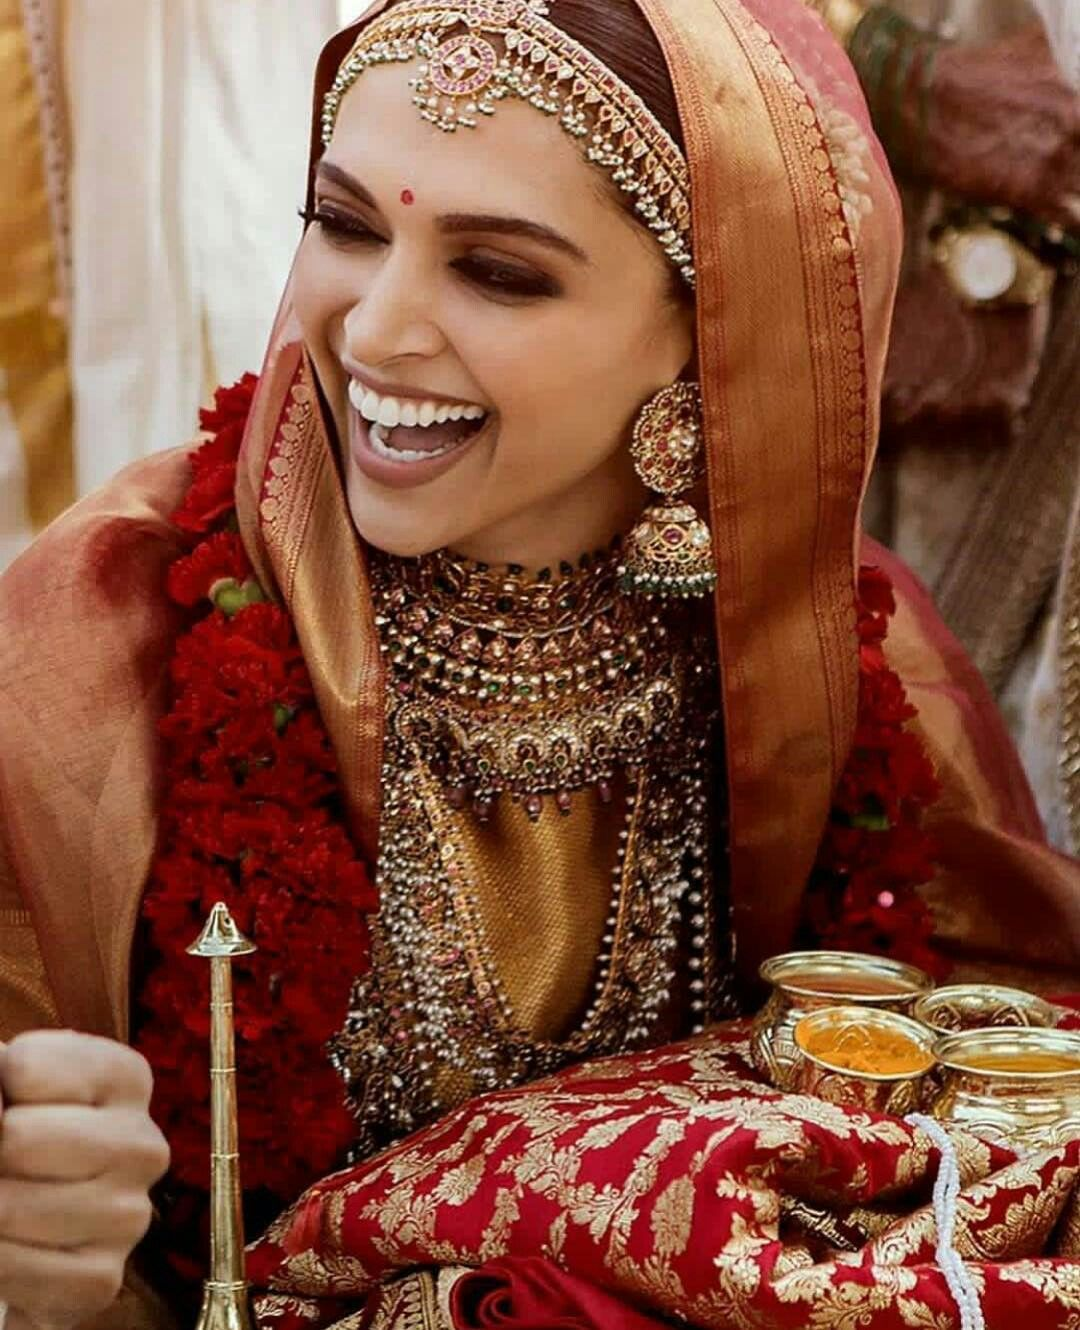 Deepika Padukone Weds Ranveer Singh Disney Princess Wedding Dresses Bollywood Wedding Princess Wedding Dresses